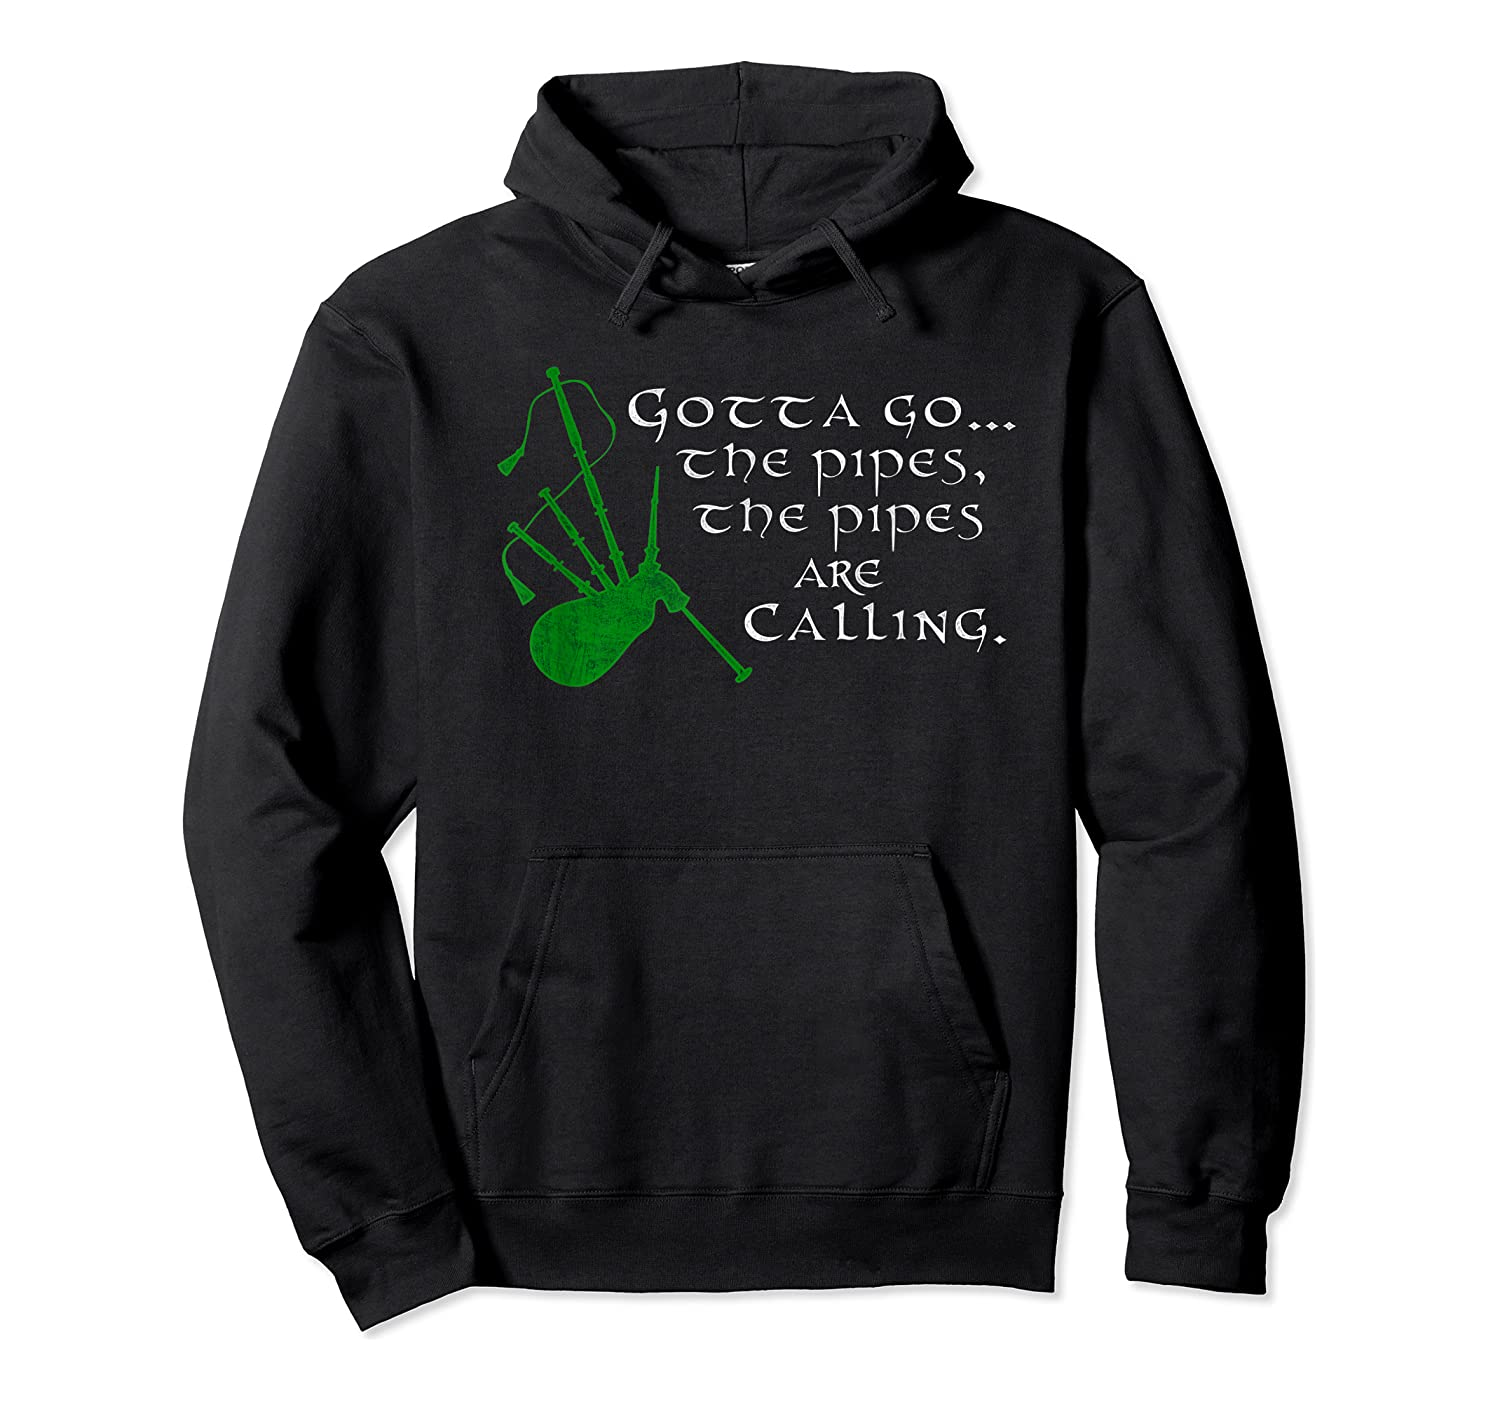 Funny Scottish Quote Gotta Go The Pipes Are Calling Bagpipes T-shirt Unisex Pullover Hoodie